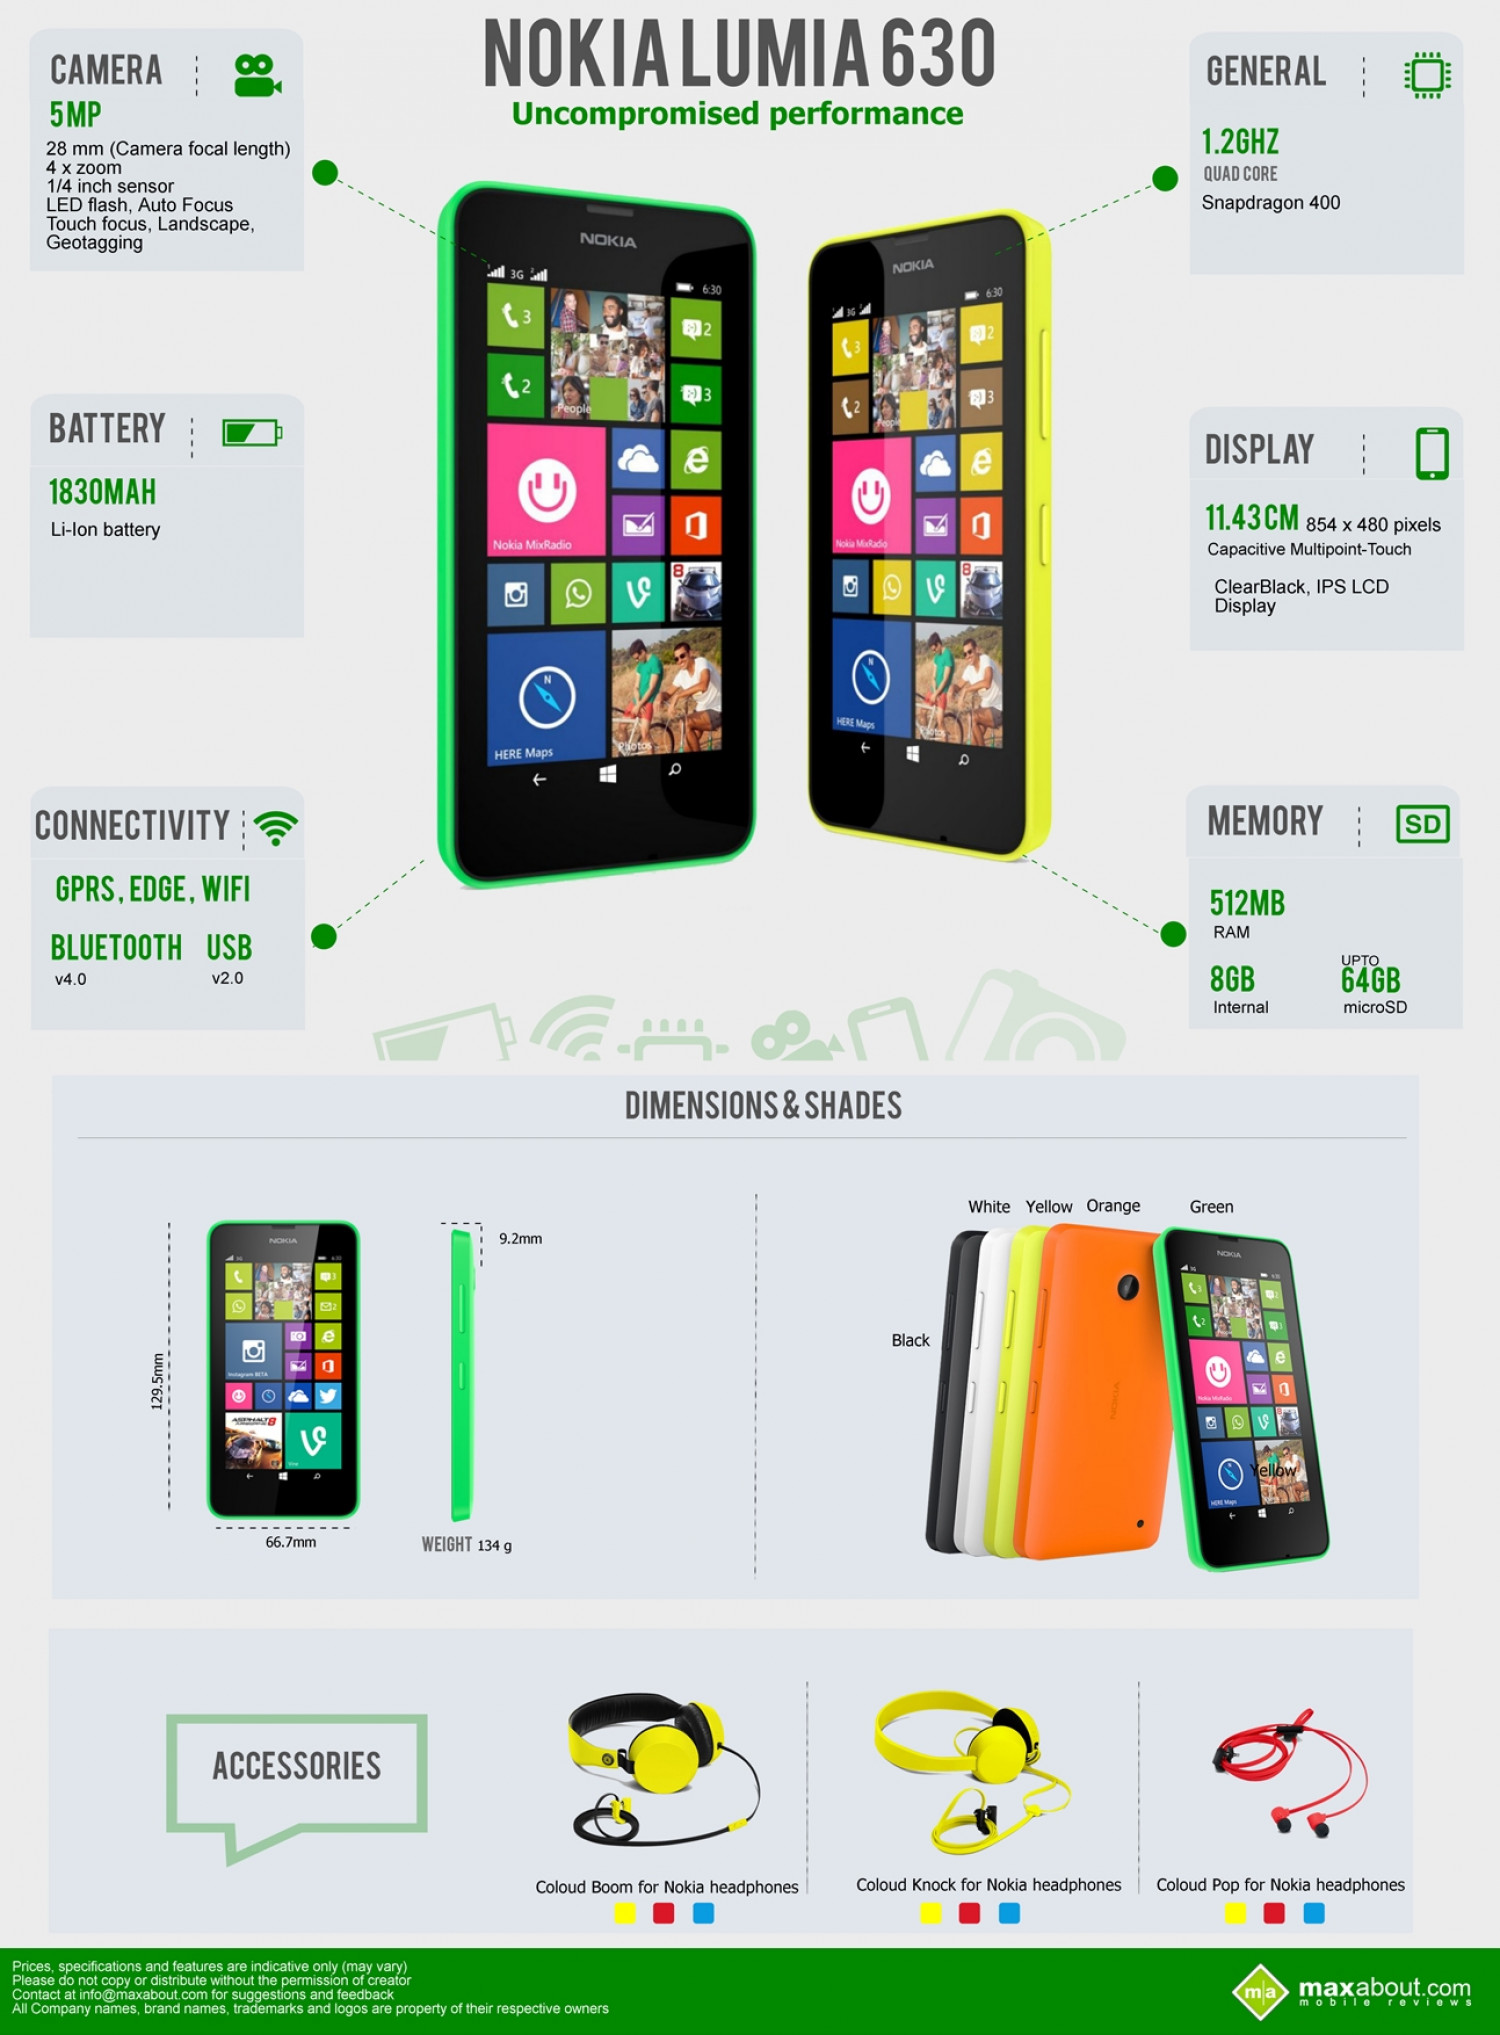 Nokia Lumia 630 - Uncompromised Performance Infographic